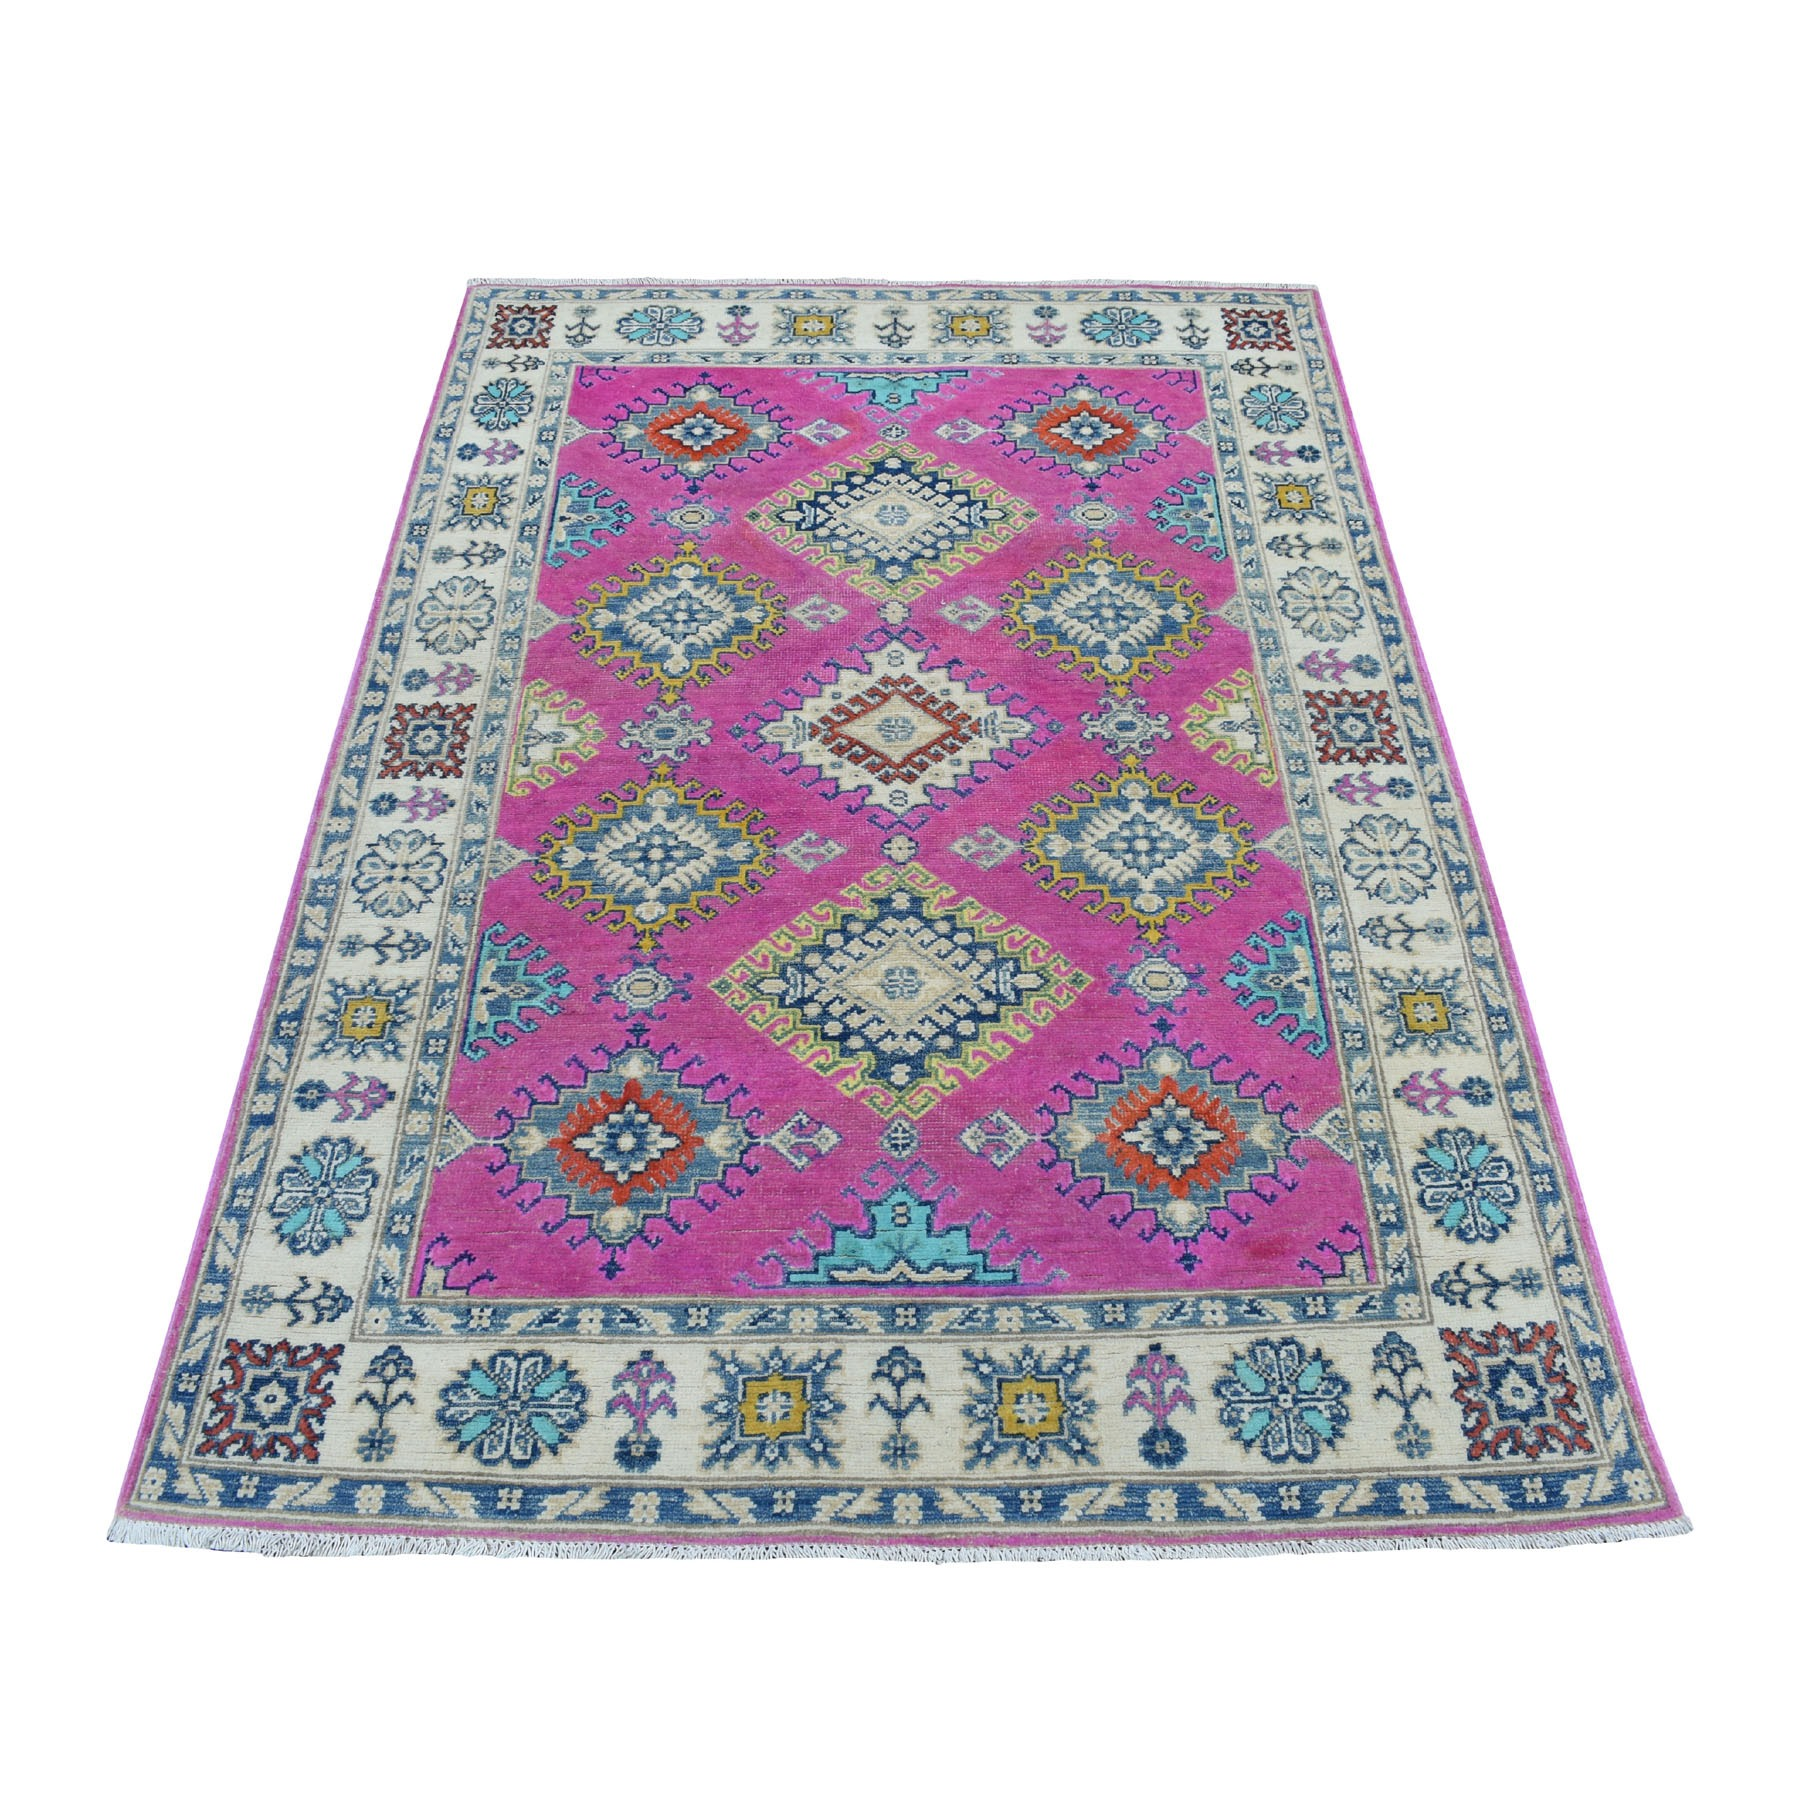 4'X6' Colorful Pink Fusion Kazak Pure Wool Geometric Design Hand Knotted Oriental Rug moaed00a